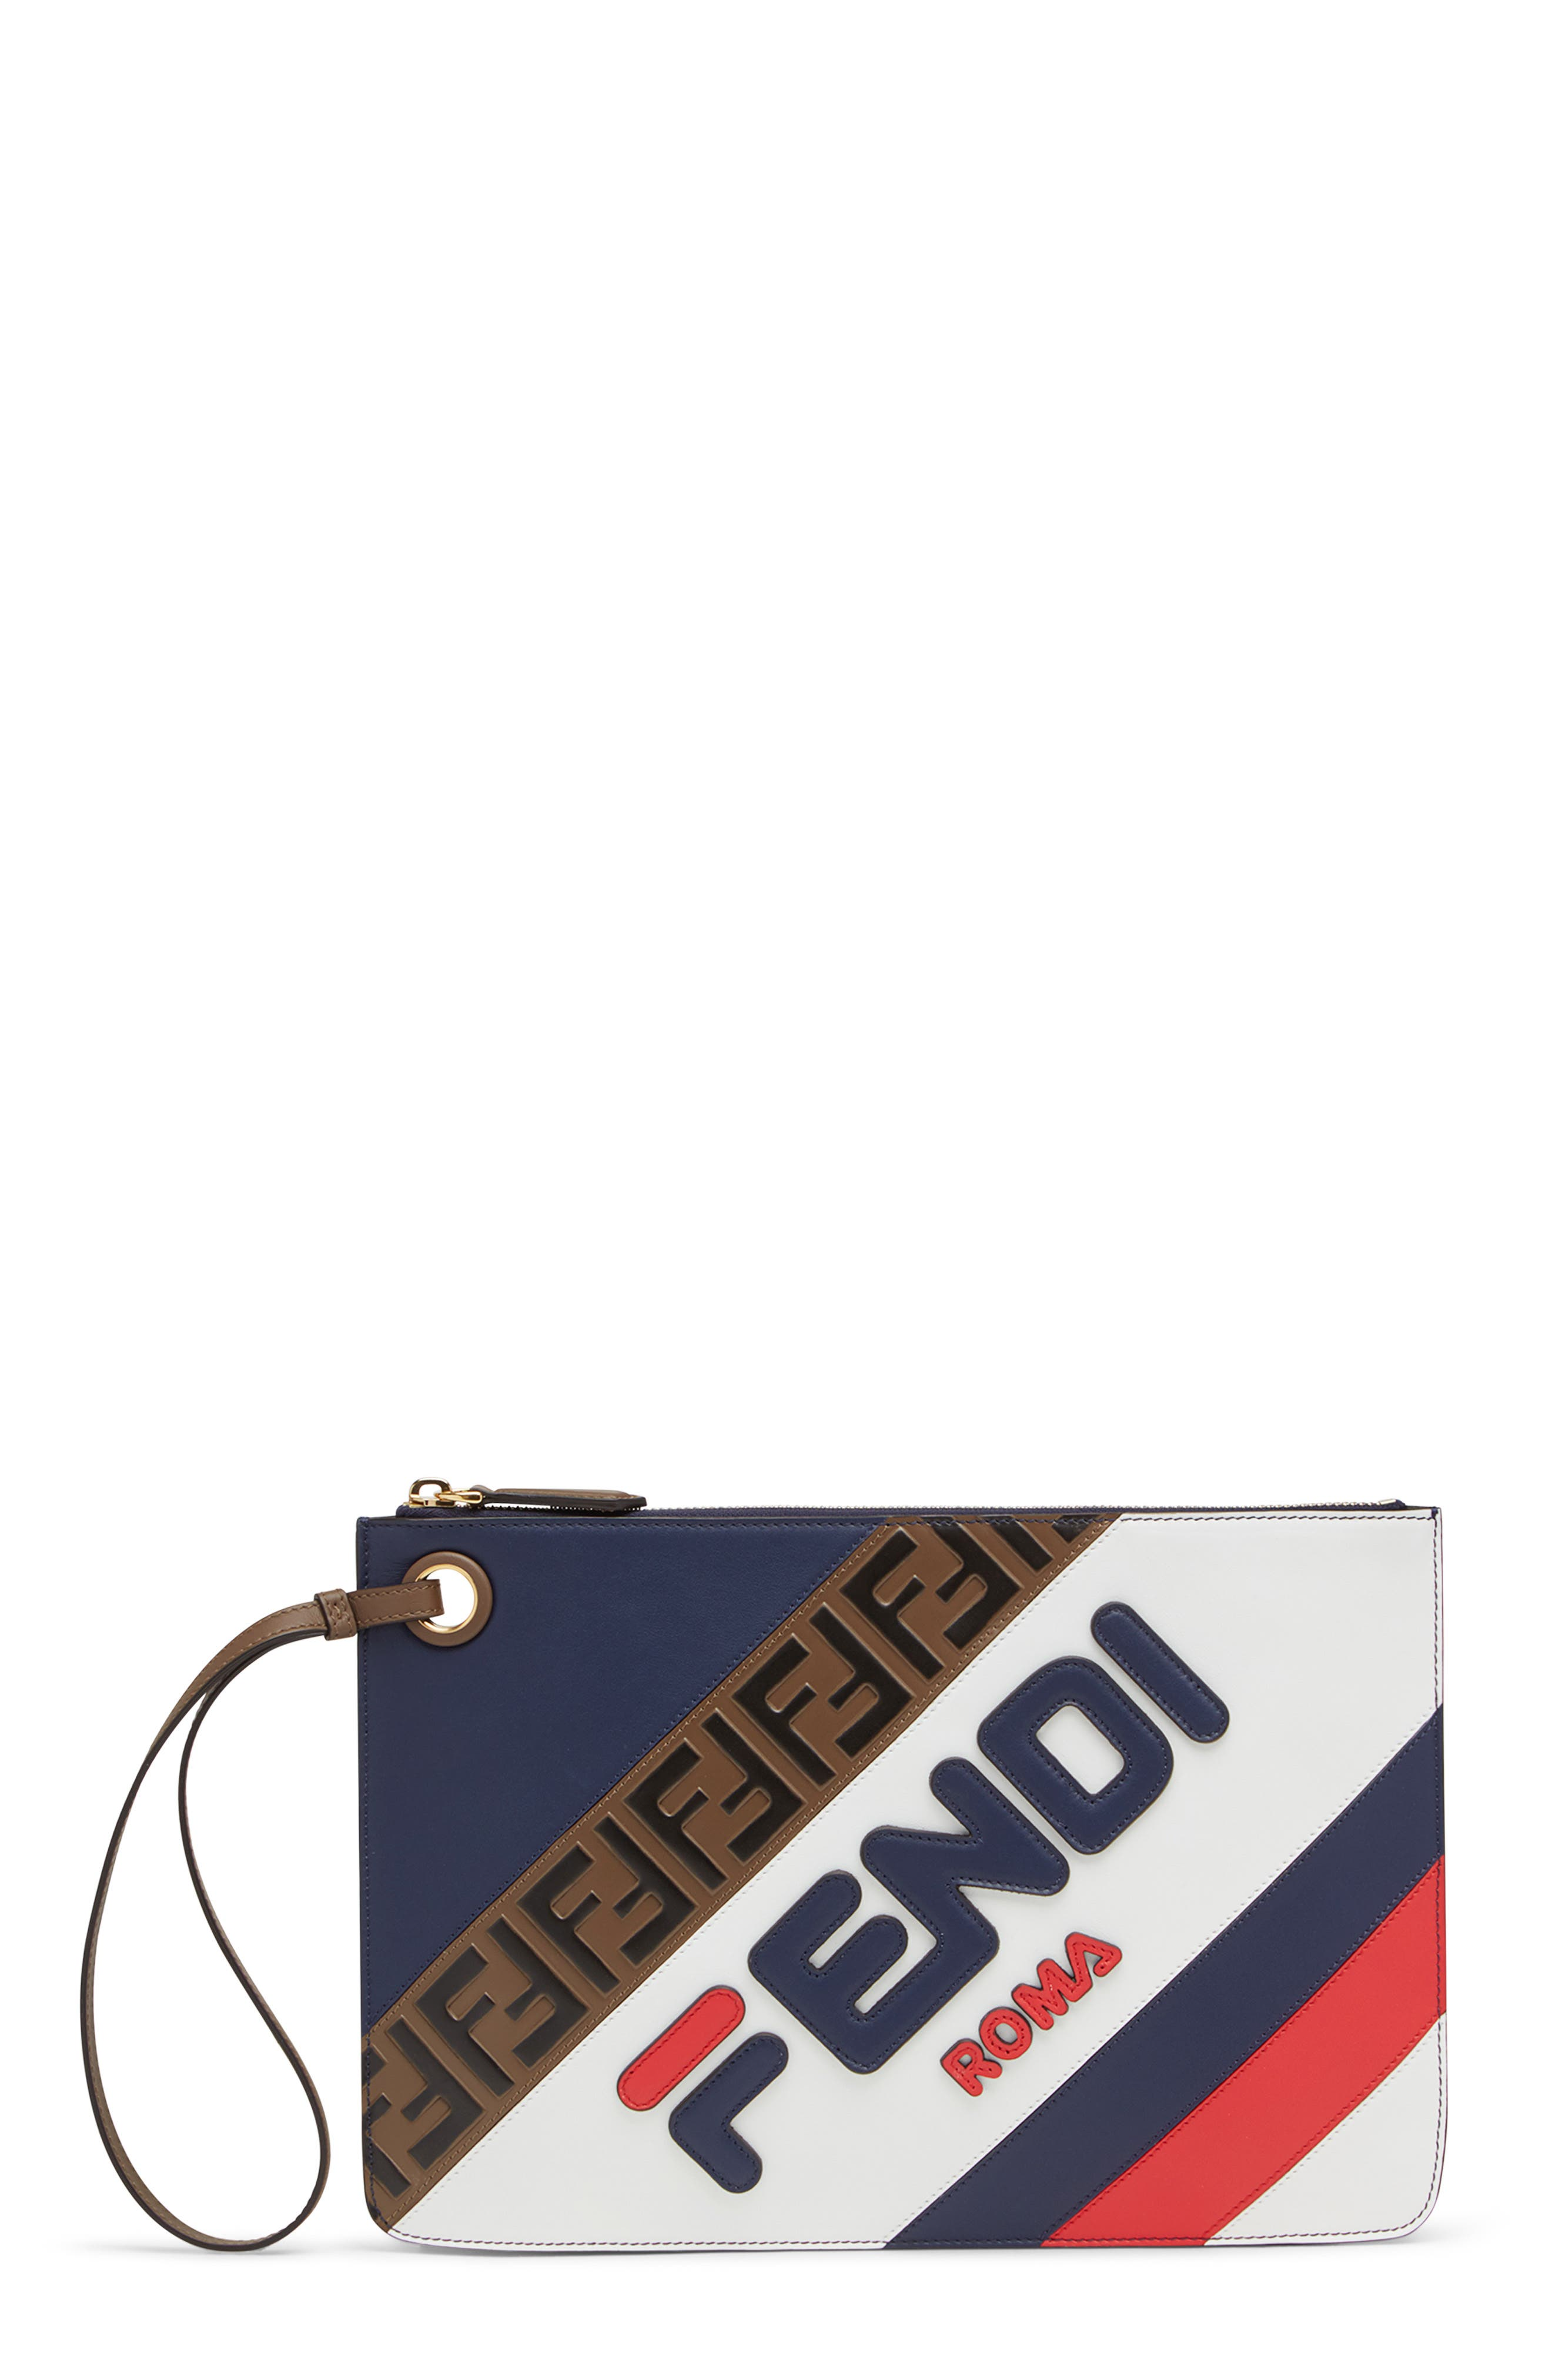 FENDI, x FILA Medium Mania Logo Leather Clutch, Main thumbnail 1, color, BLUE/ BERRY MULTI